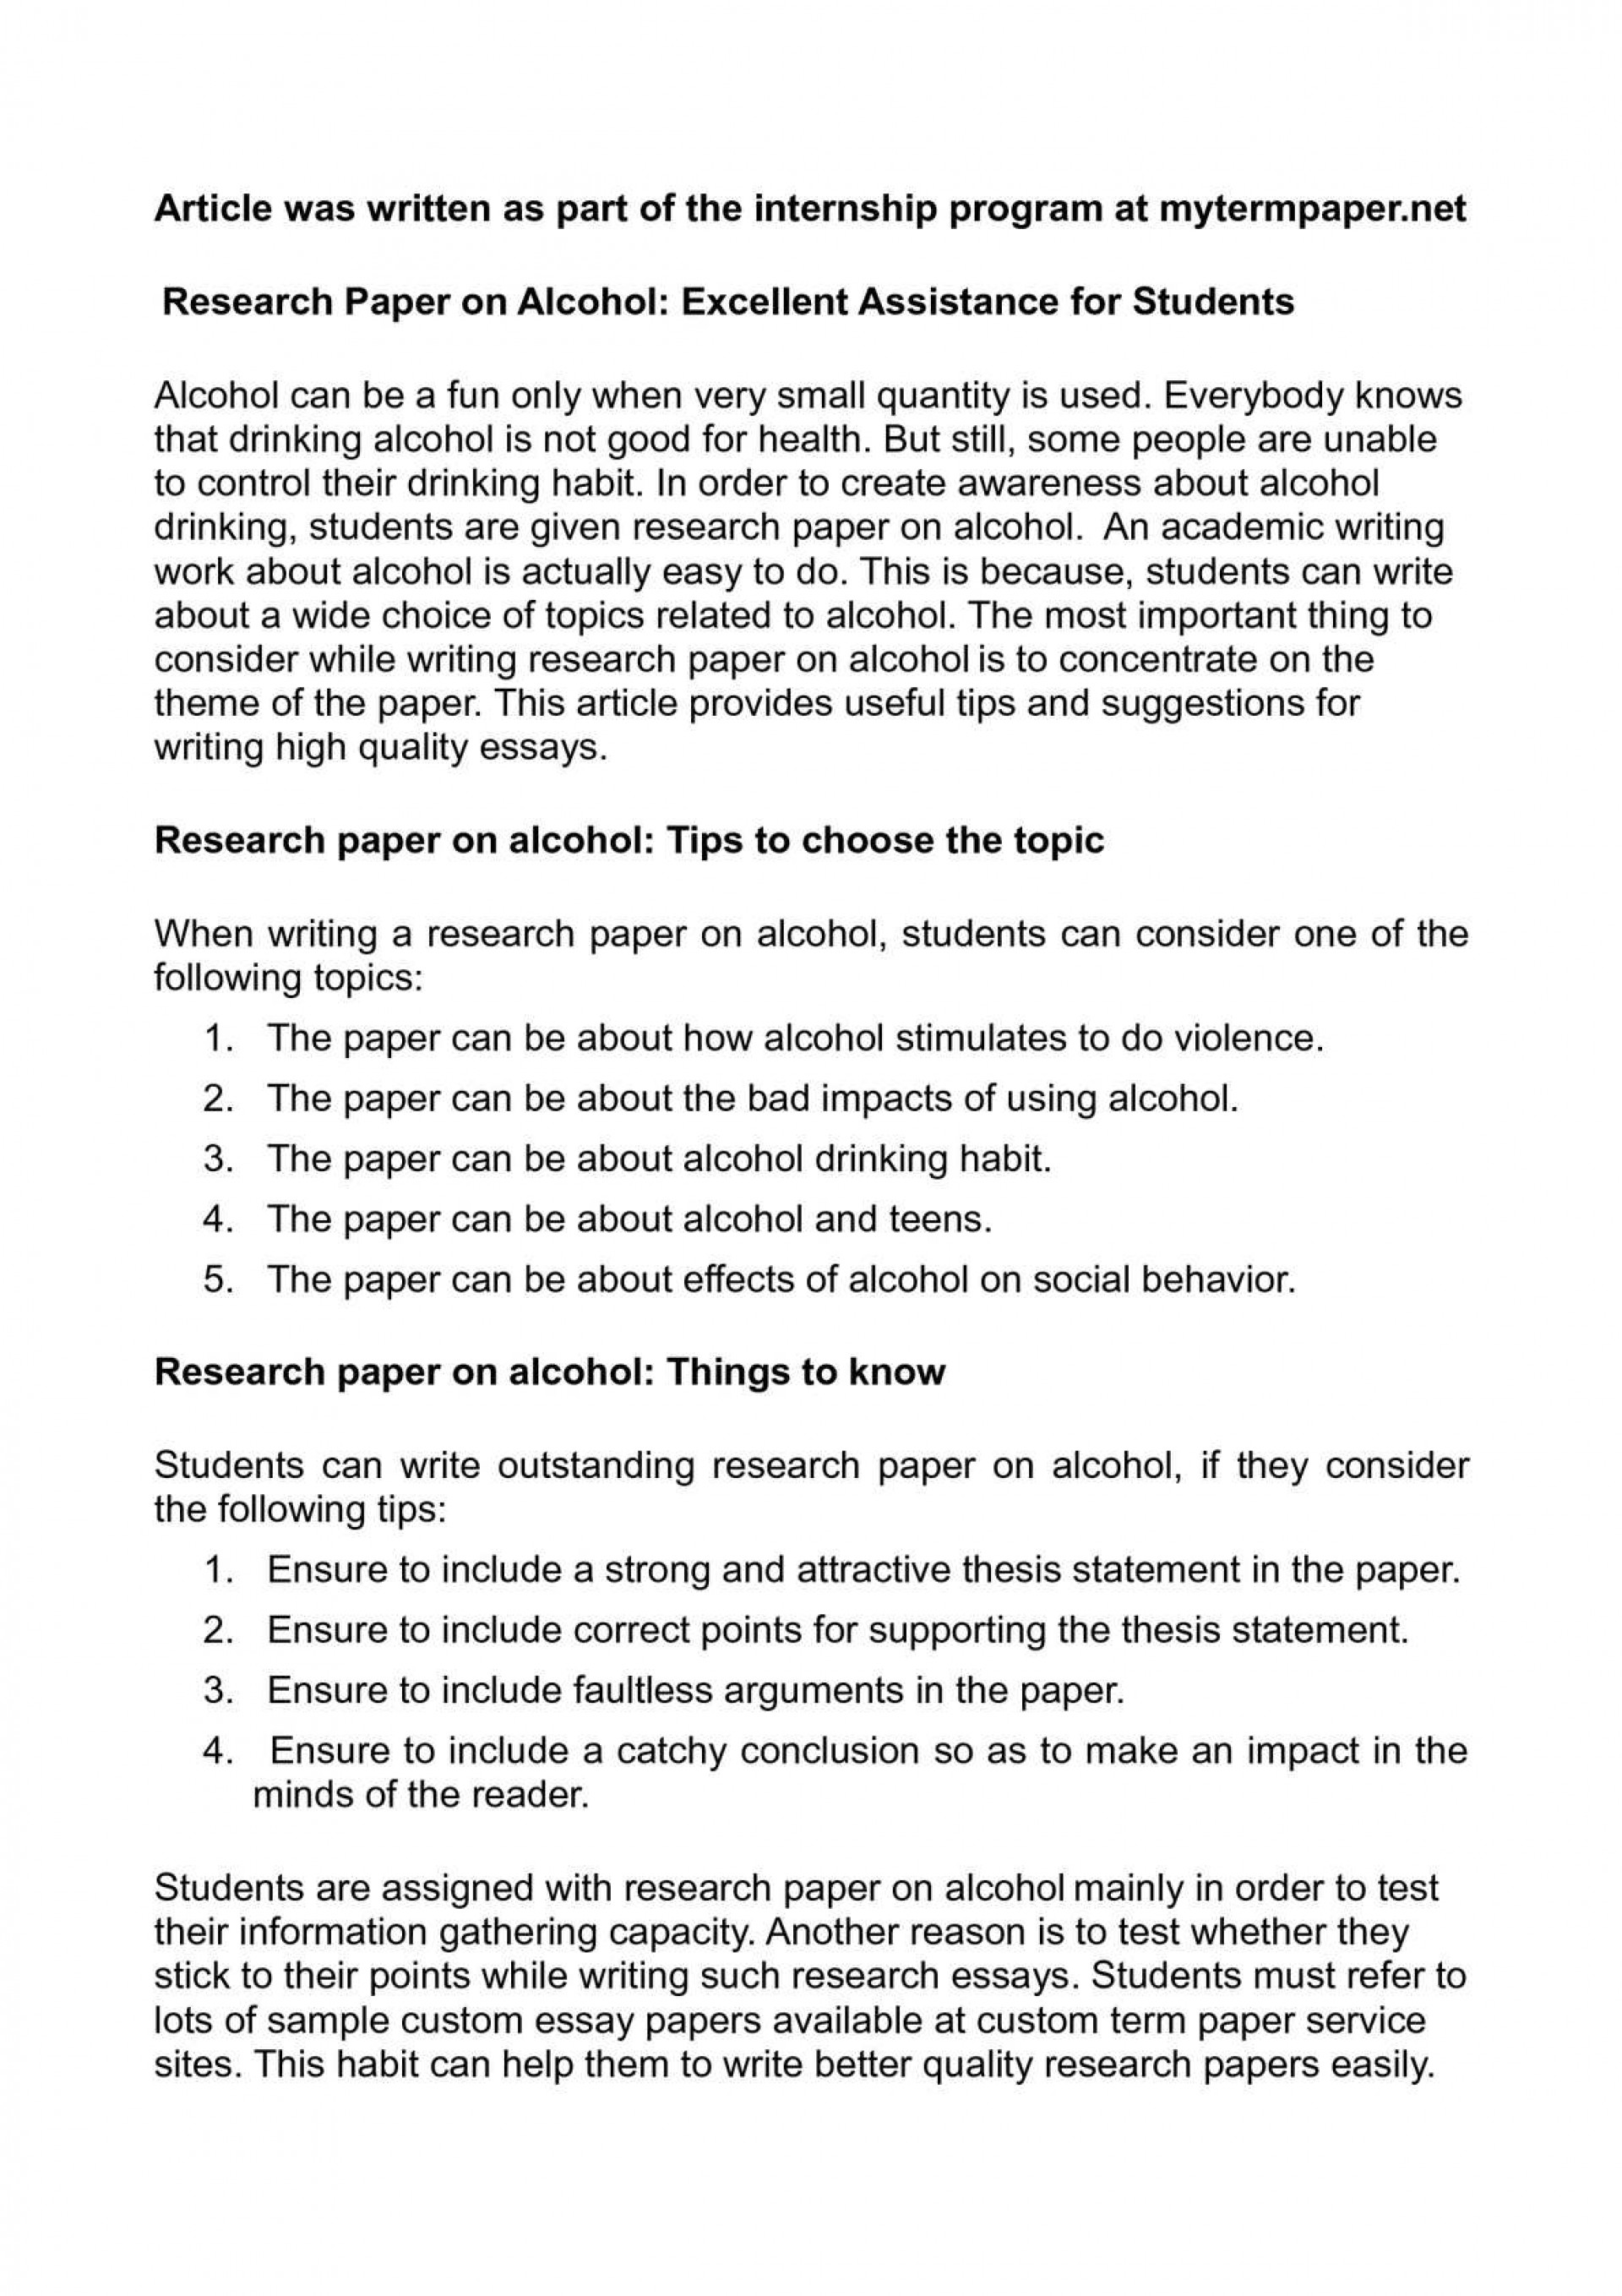 001 Research Paper On Alcohol Awesome Articles Substance Abuse Alcoholic Parents Use Disorder 1920